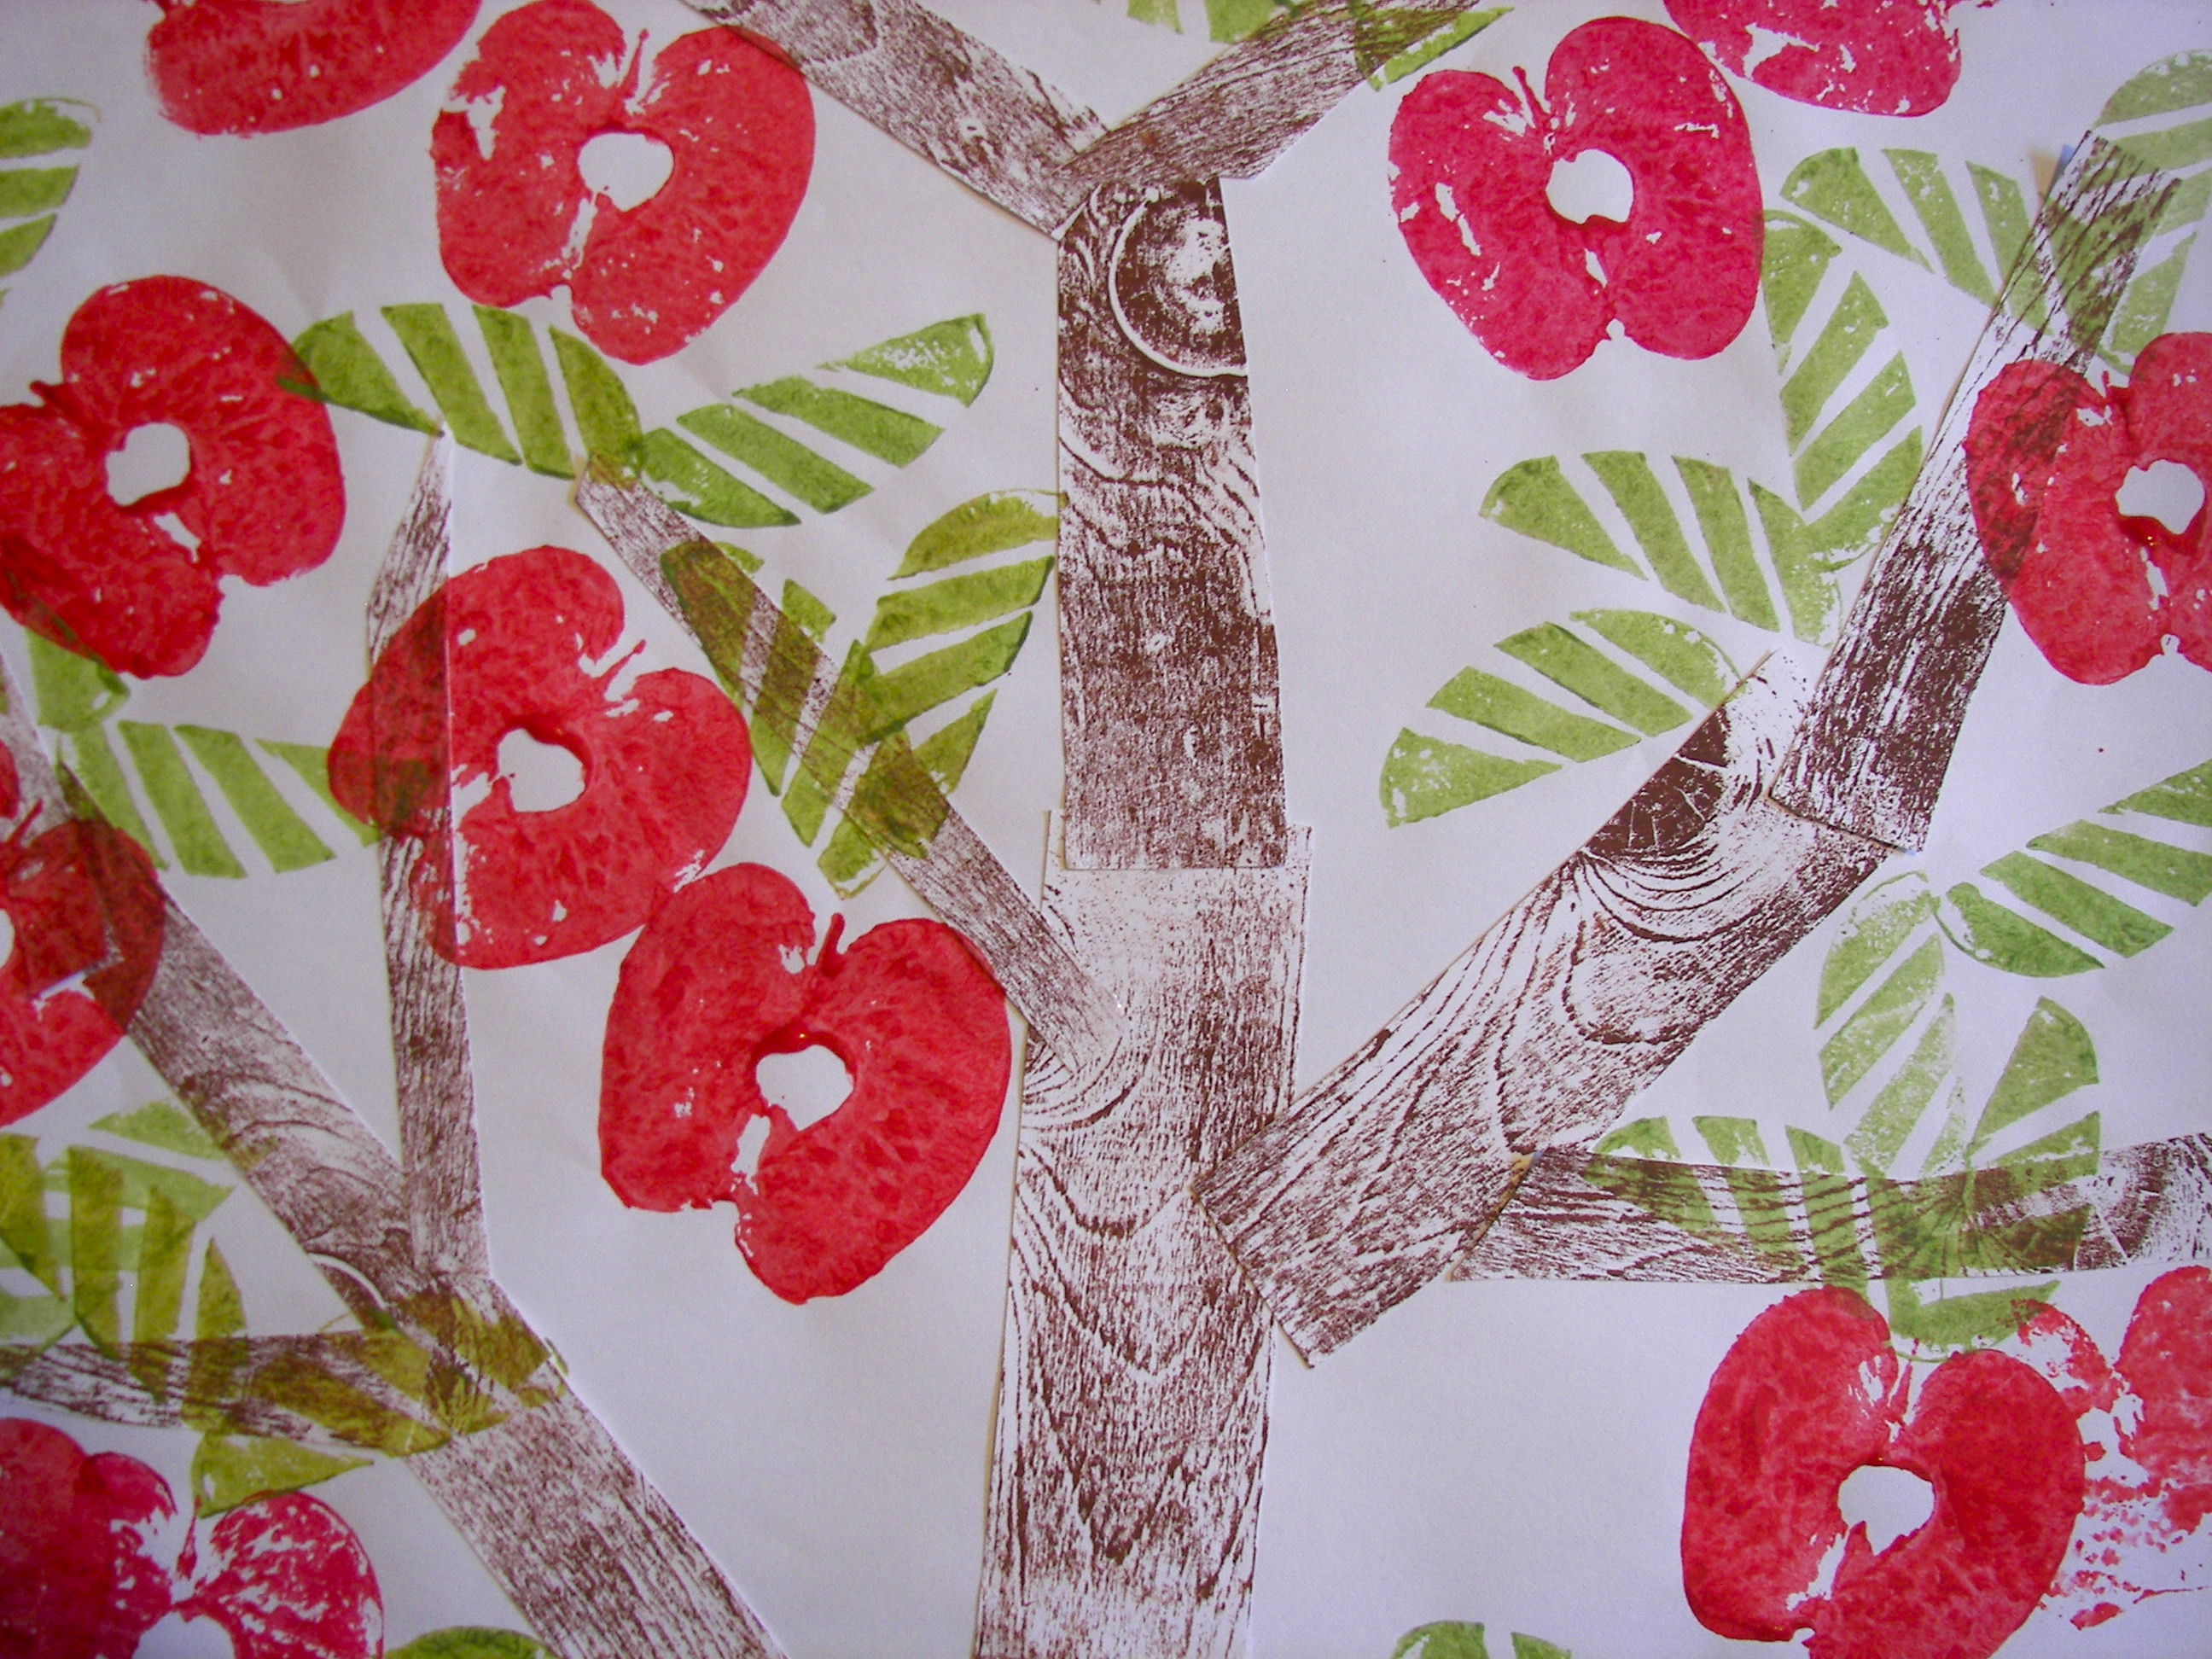 Printed Fruit Trees Nettle S Notes